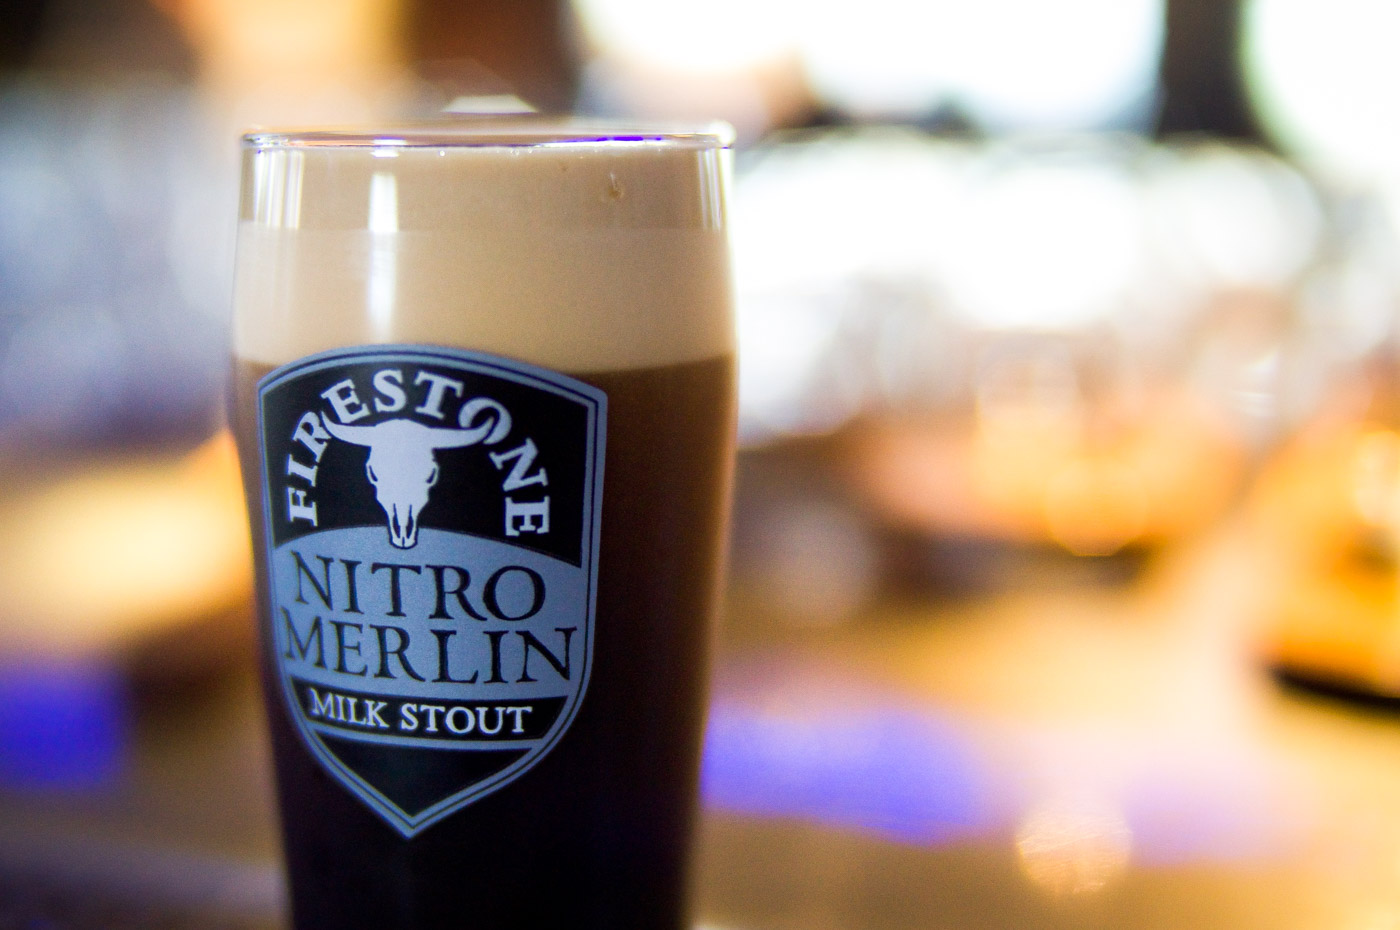 Firestone Walker Nitro Merlin Milk Stout Foam (photo courtesy of Firestone Walker)